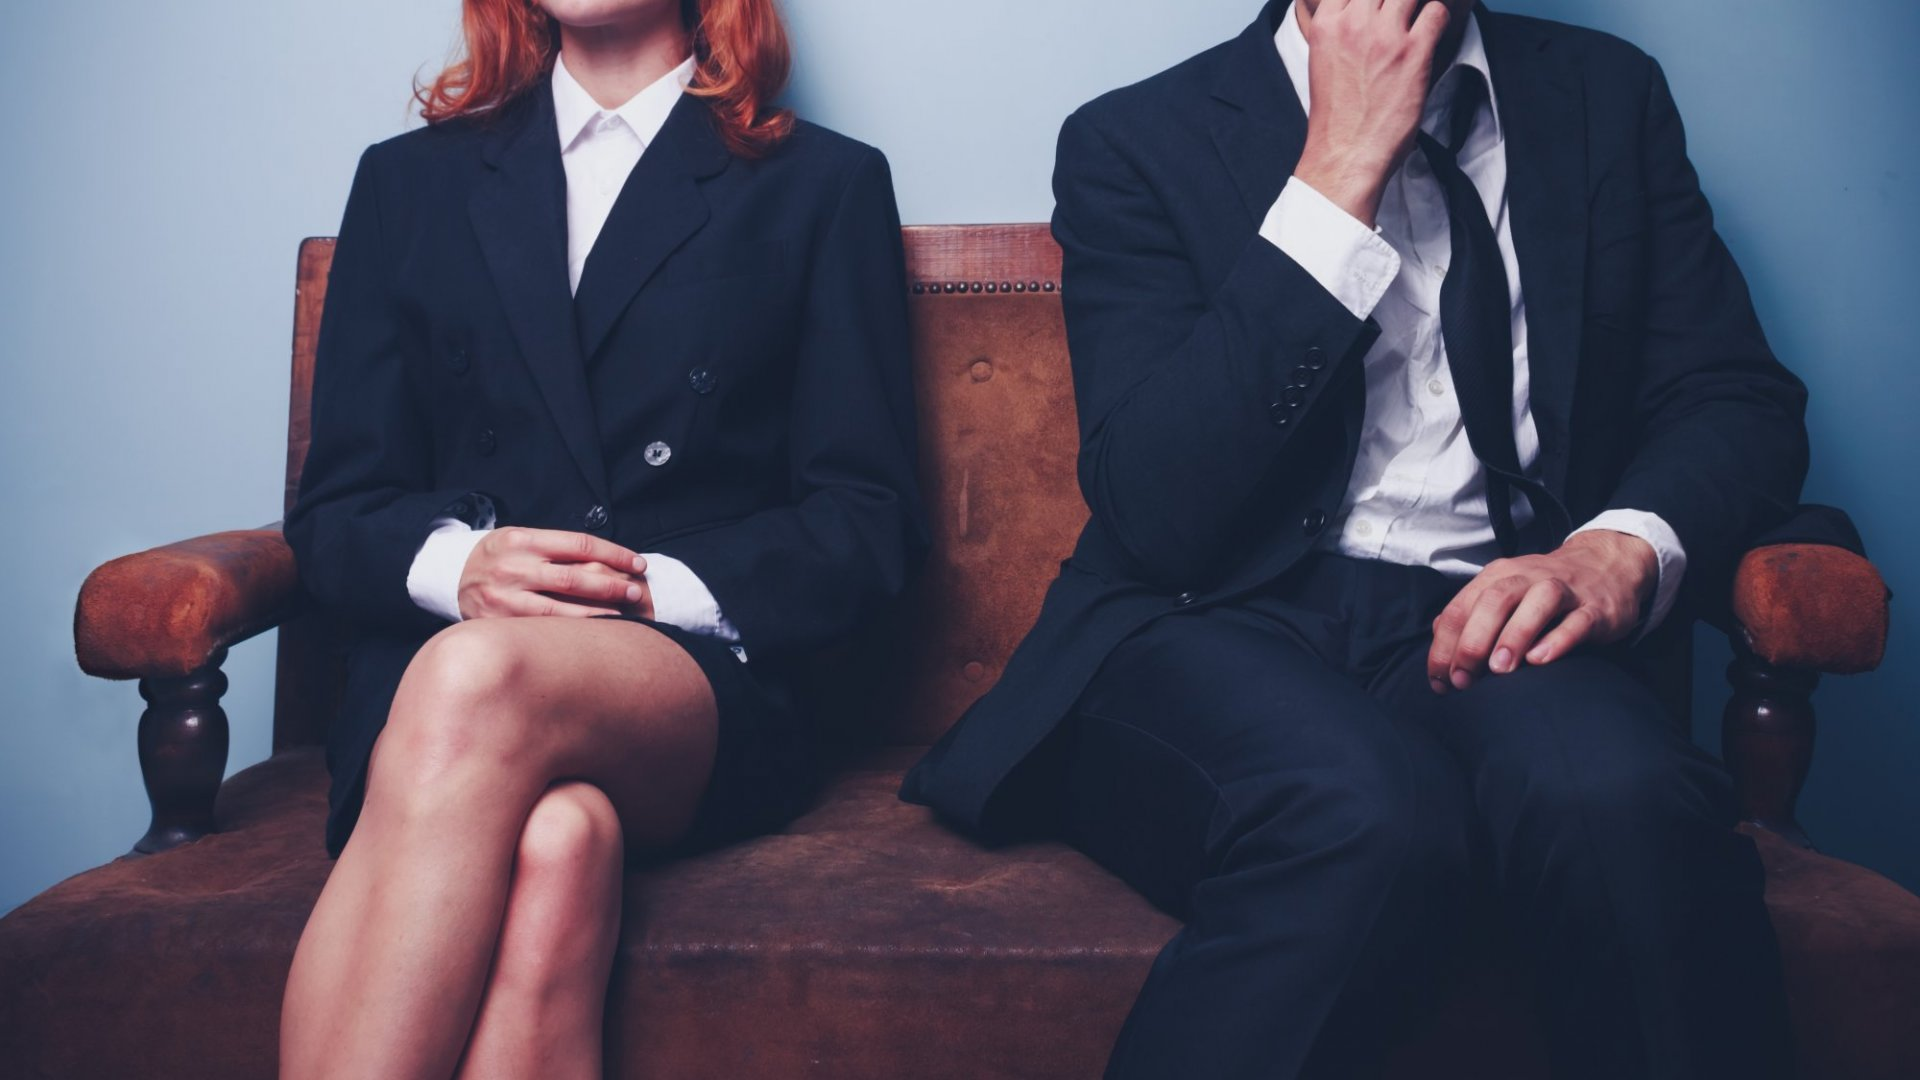 6 Body Language Mistakes That Are Making You Look Unconfident